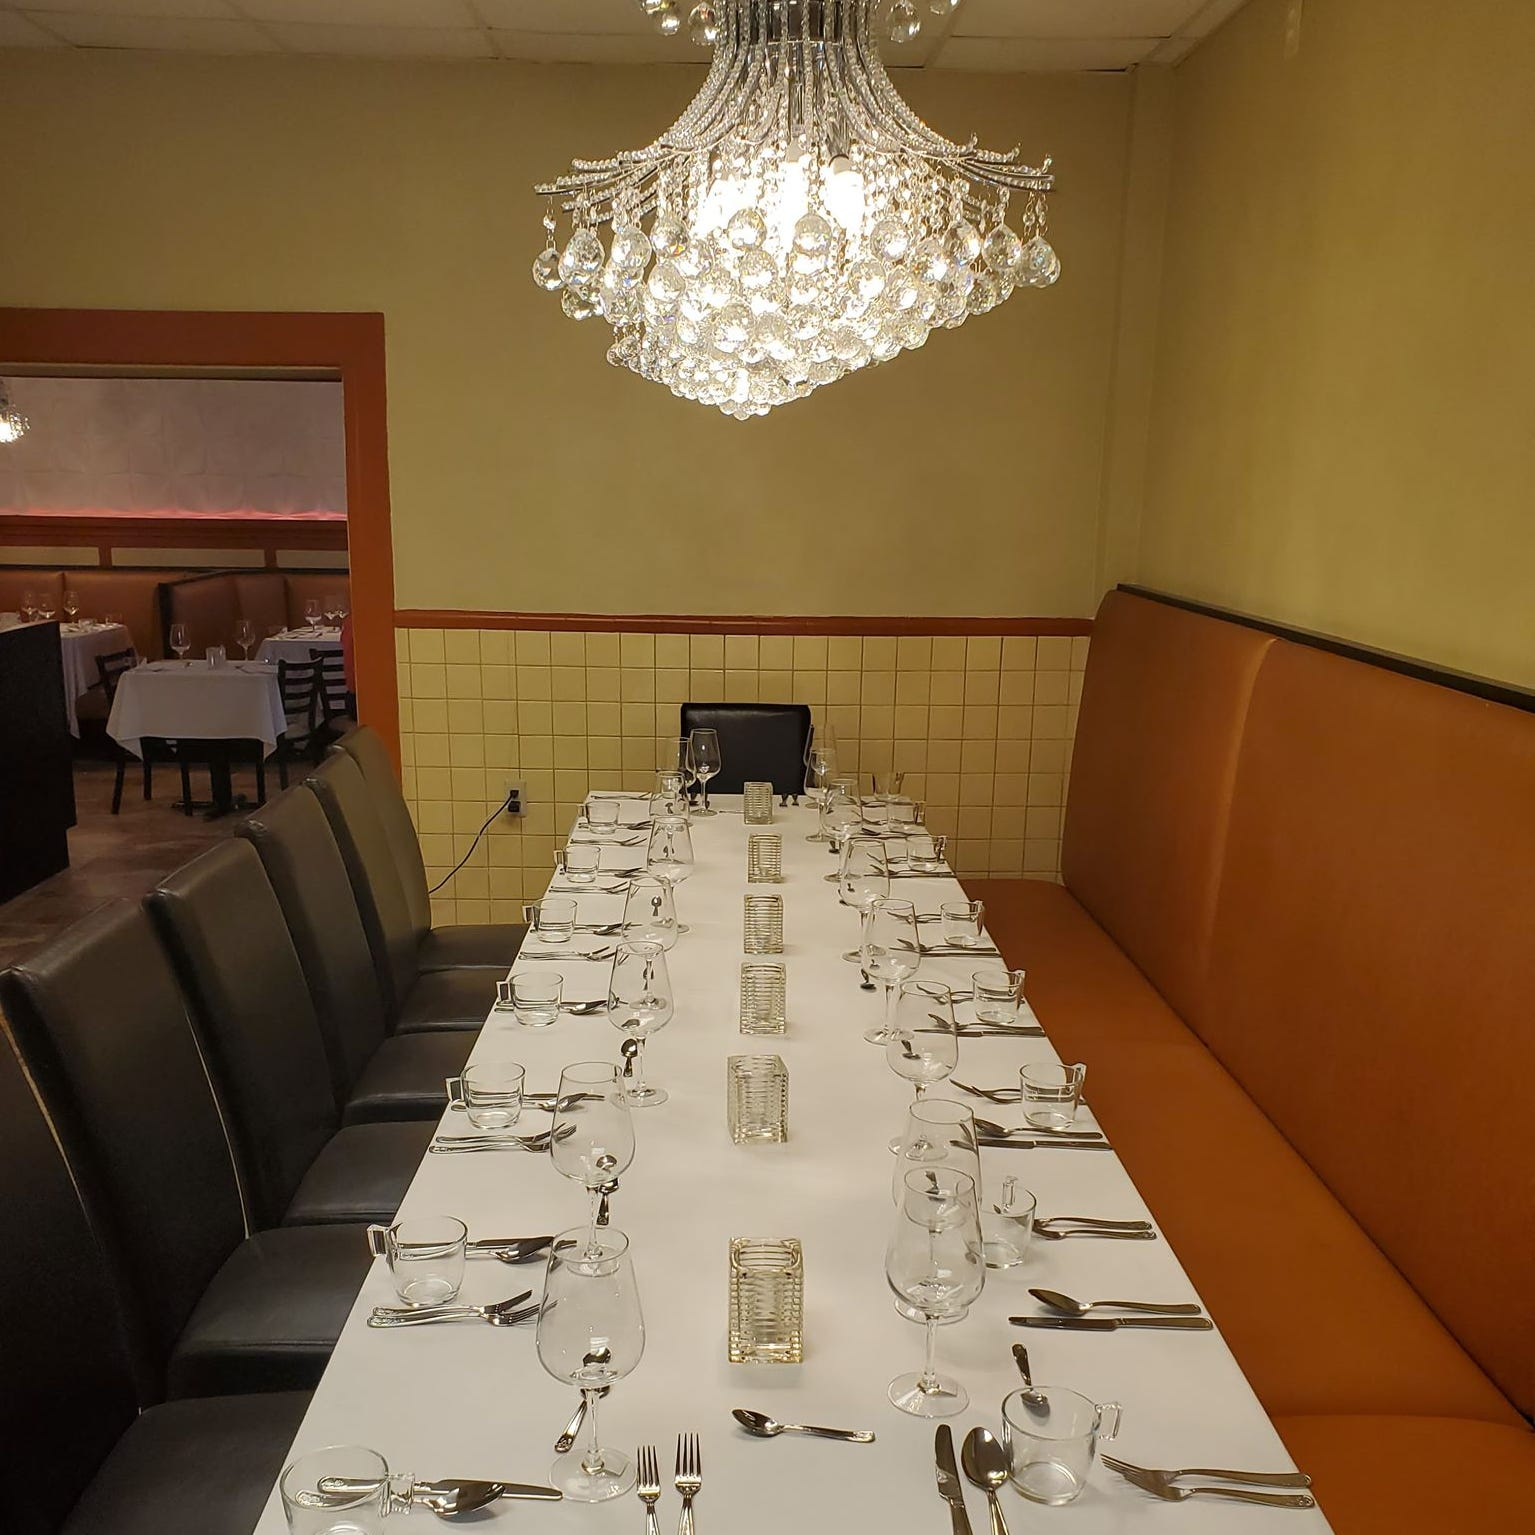 Table No. 2 Restaurant to open on the Avenue of Fashion Easter Sunday